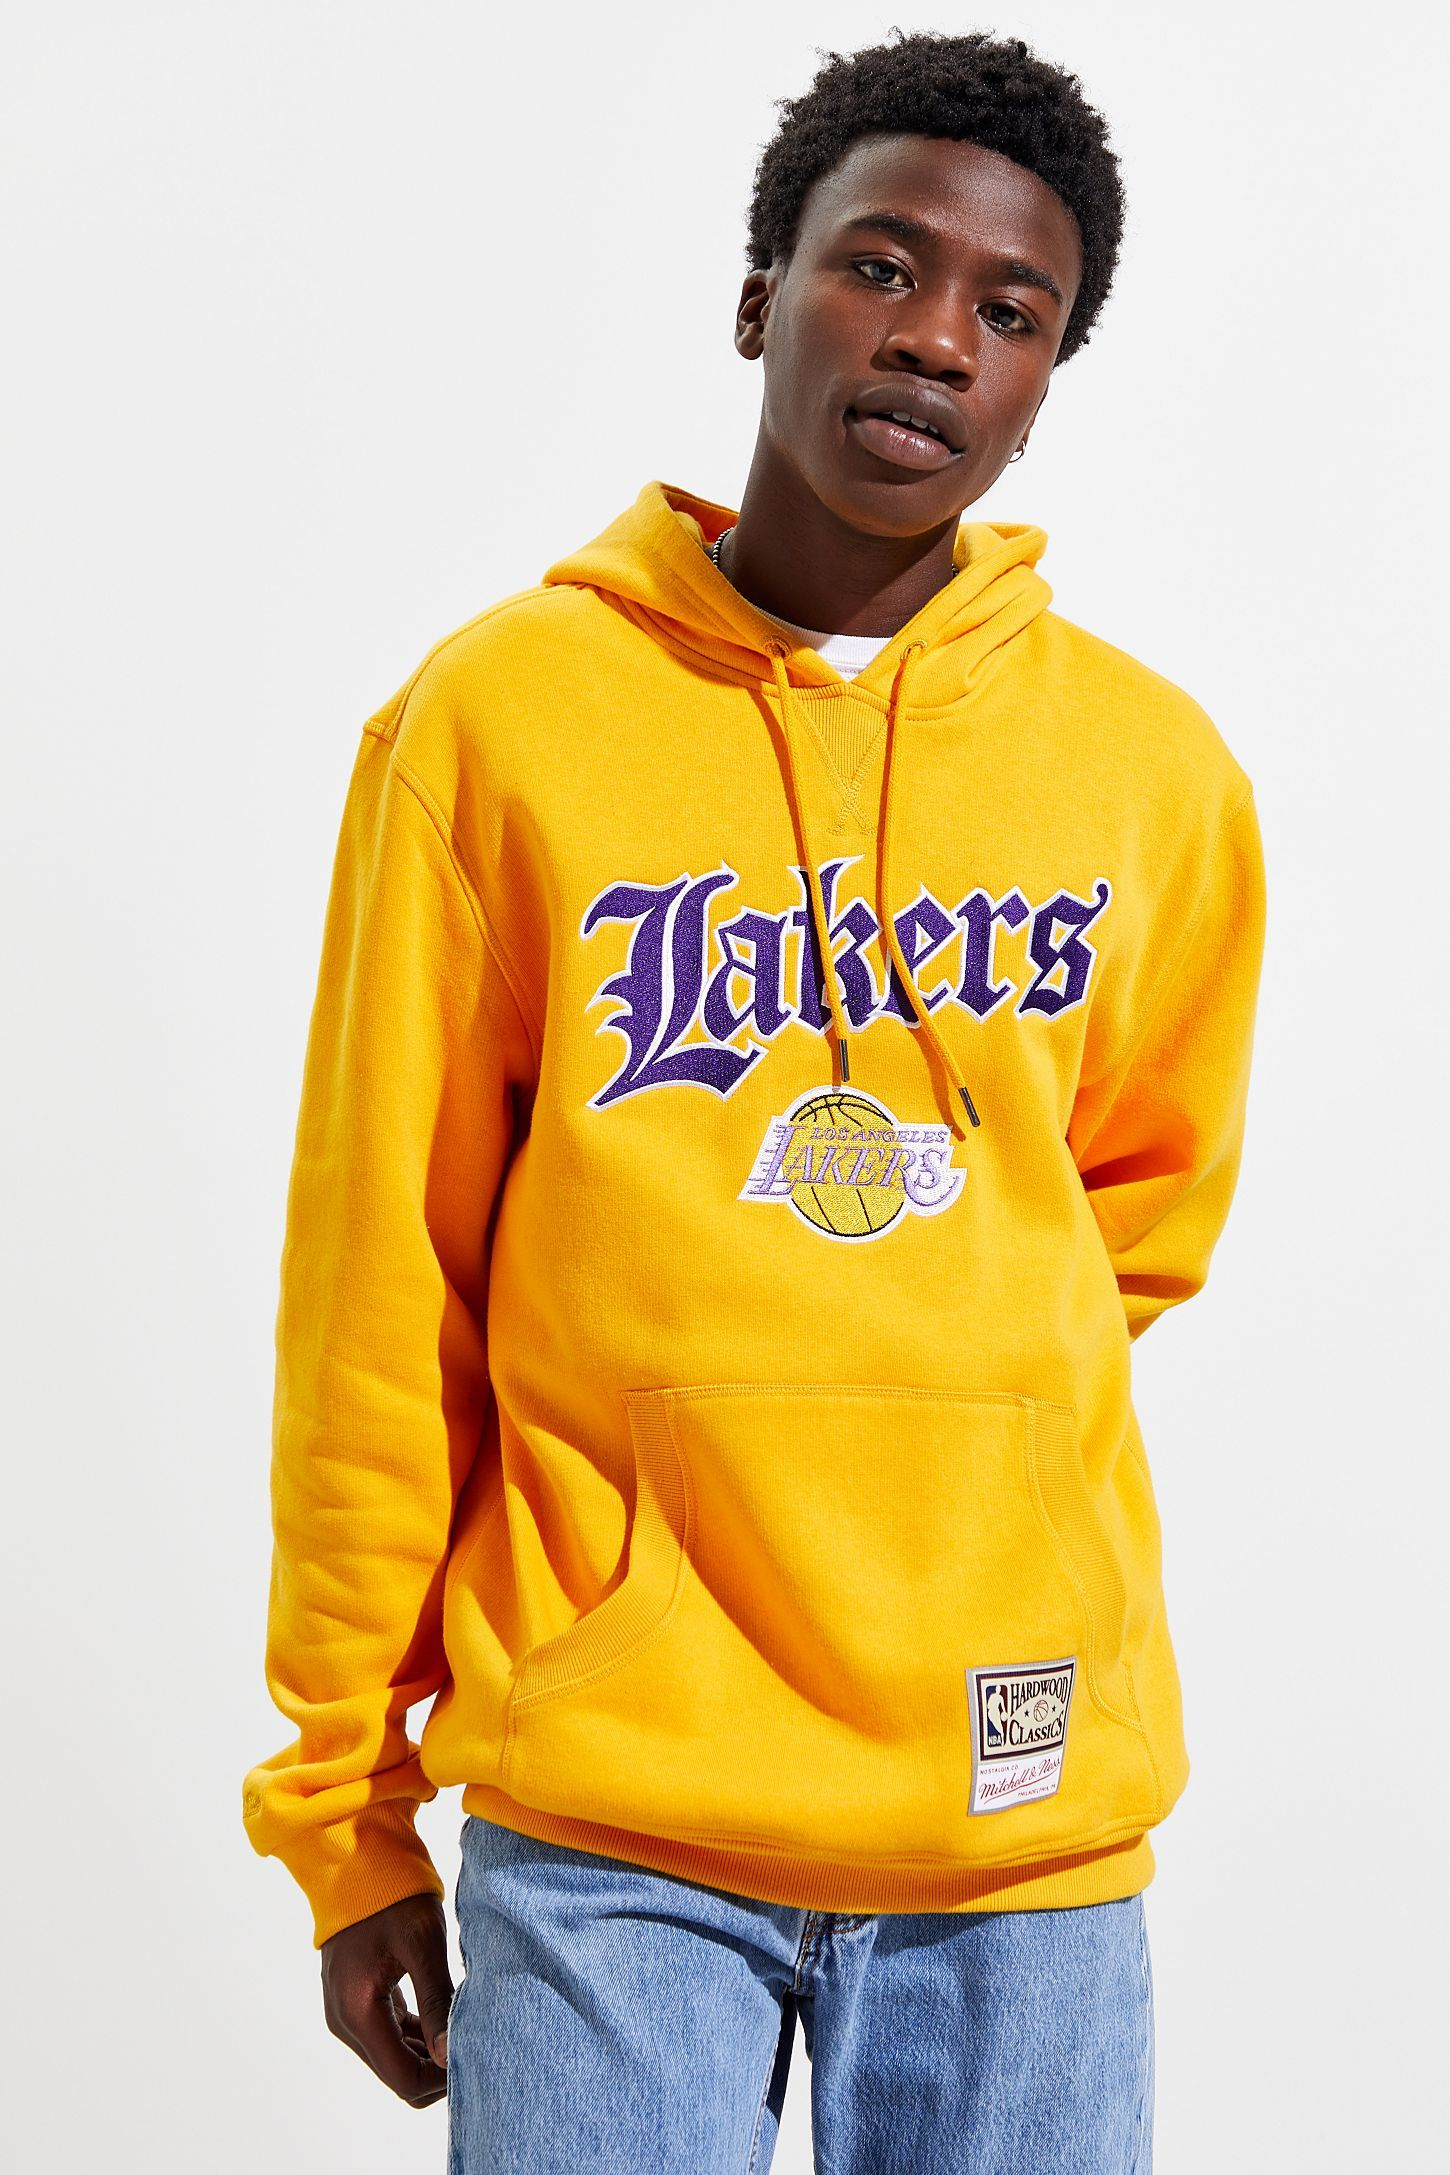 Mitchell Ness Old English Los Angeles Lakers Hoodie Sweatshirt In 2020 Hoodies Los Angeles Lakers Sweatshirts Hoodie